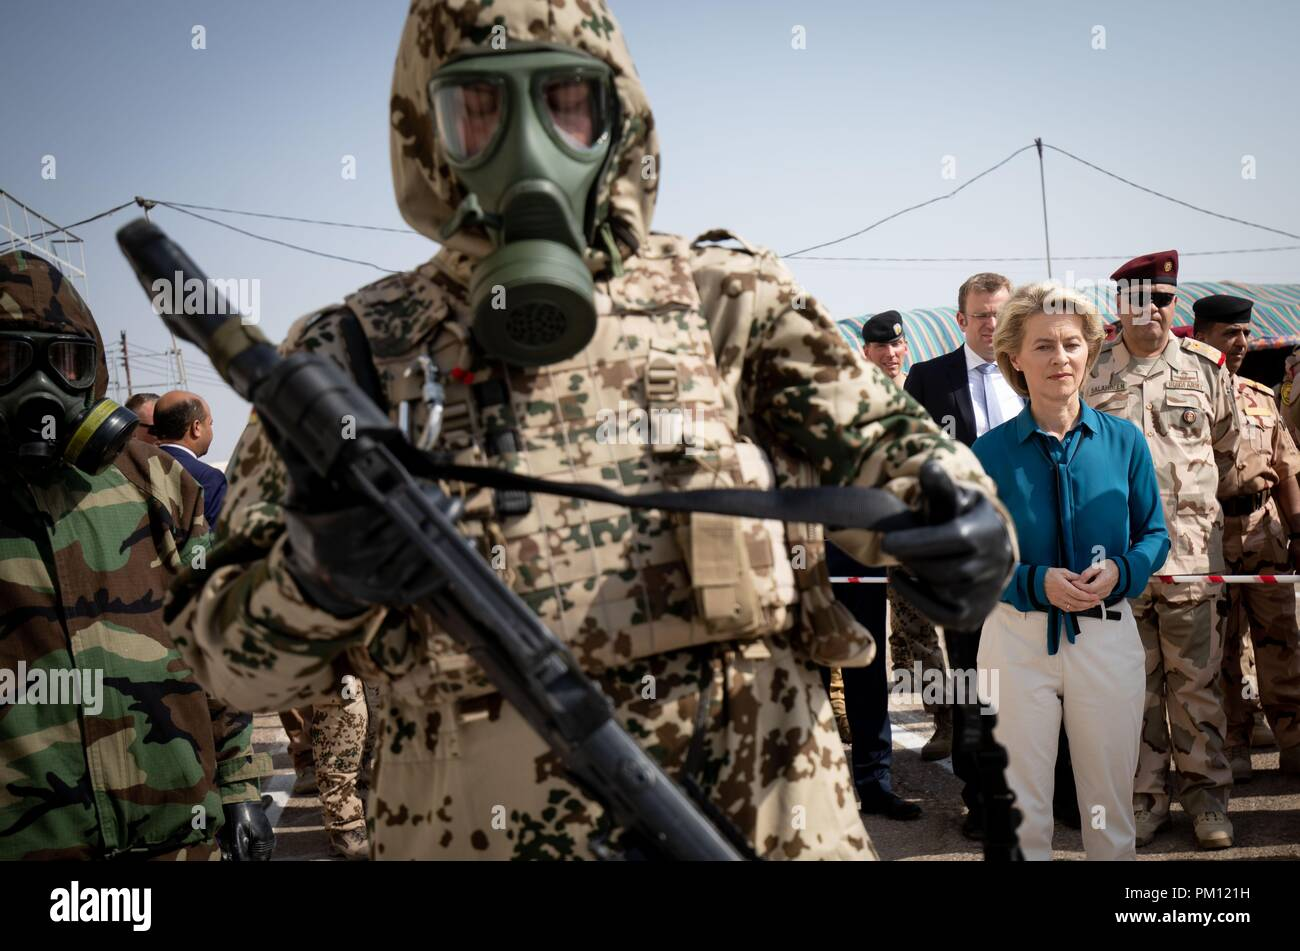 Taji, Iraq. 16th Sep, 2018. Ursula von der Leyen (CDU), German Minister of Defence, visiting German and Iraqi soldiers at a CBRN defence training centre at the Iraqi military base in Taji. The Minister is also in Iraq for political talks. Credit: Kay Nietfeld/dpa/Alamy Live News - Stock Image